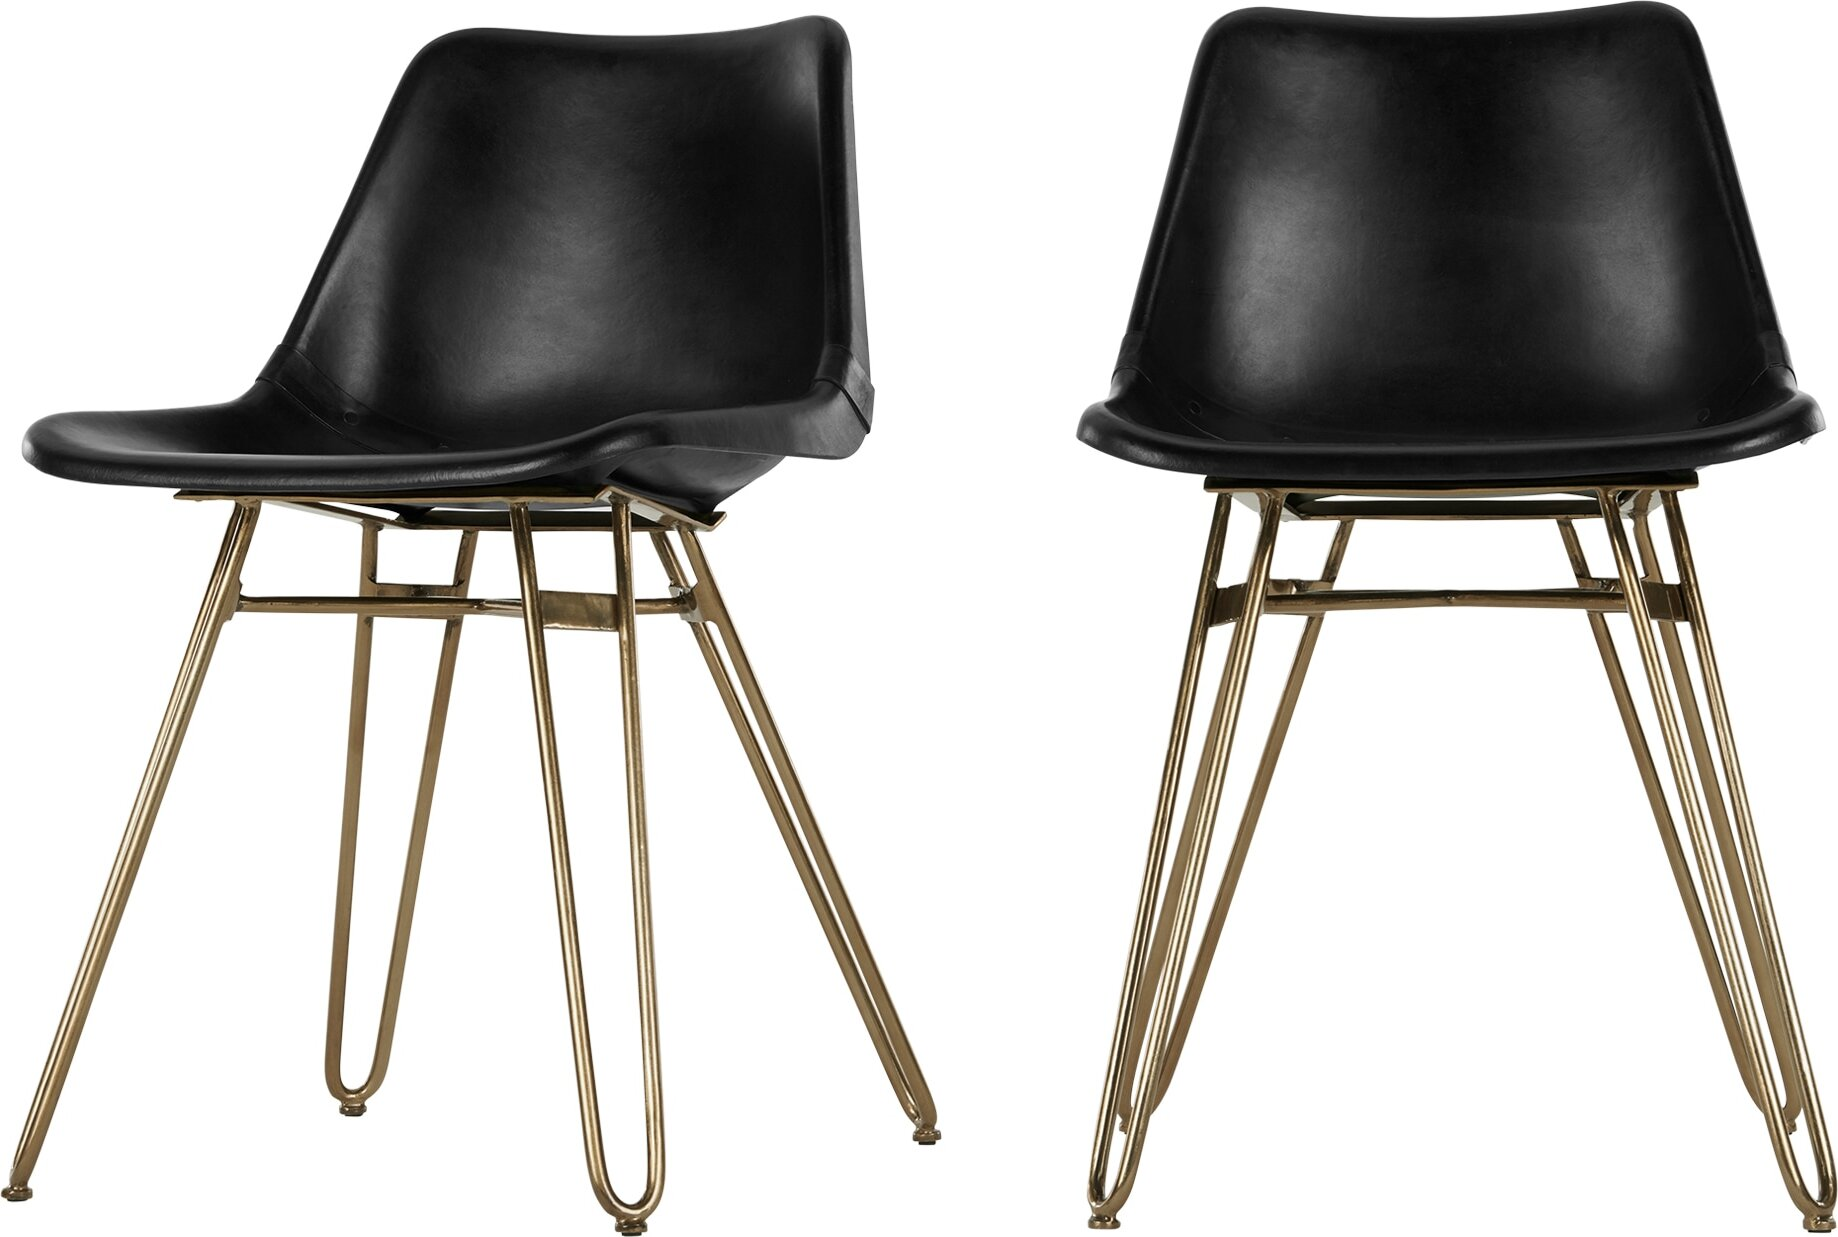 Image of 2 x Kendal Dining Chair, Black and Brass